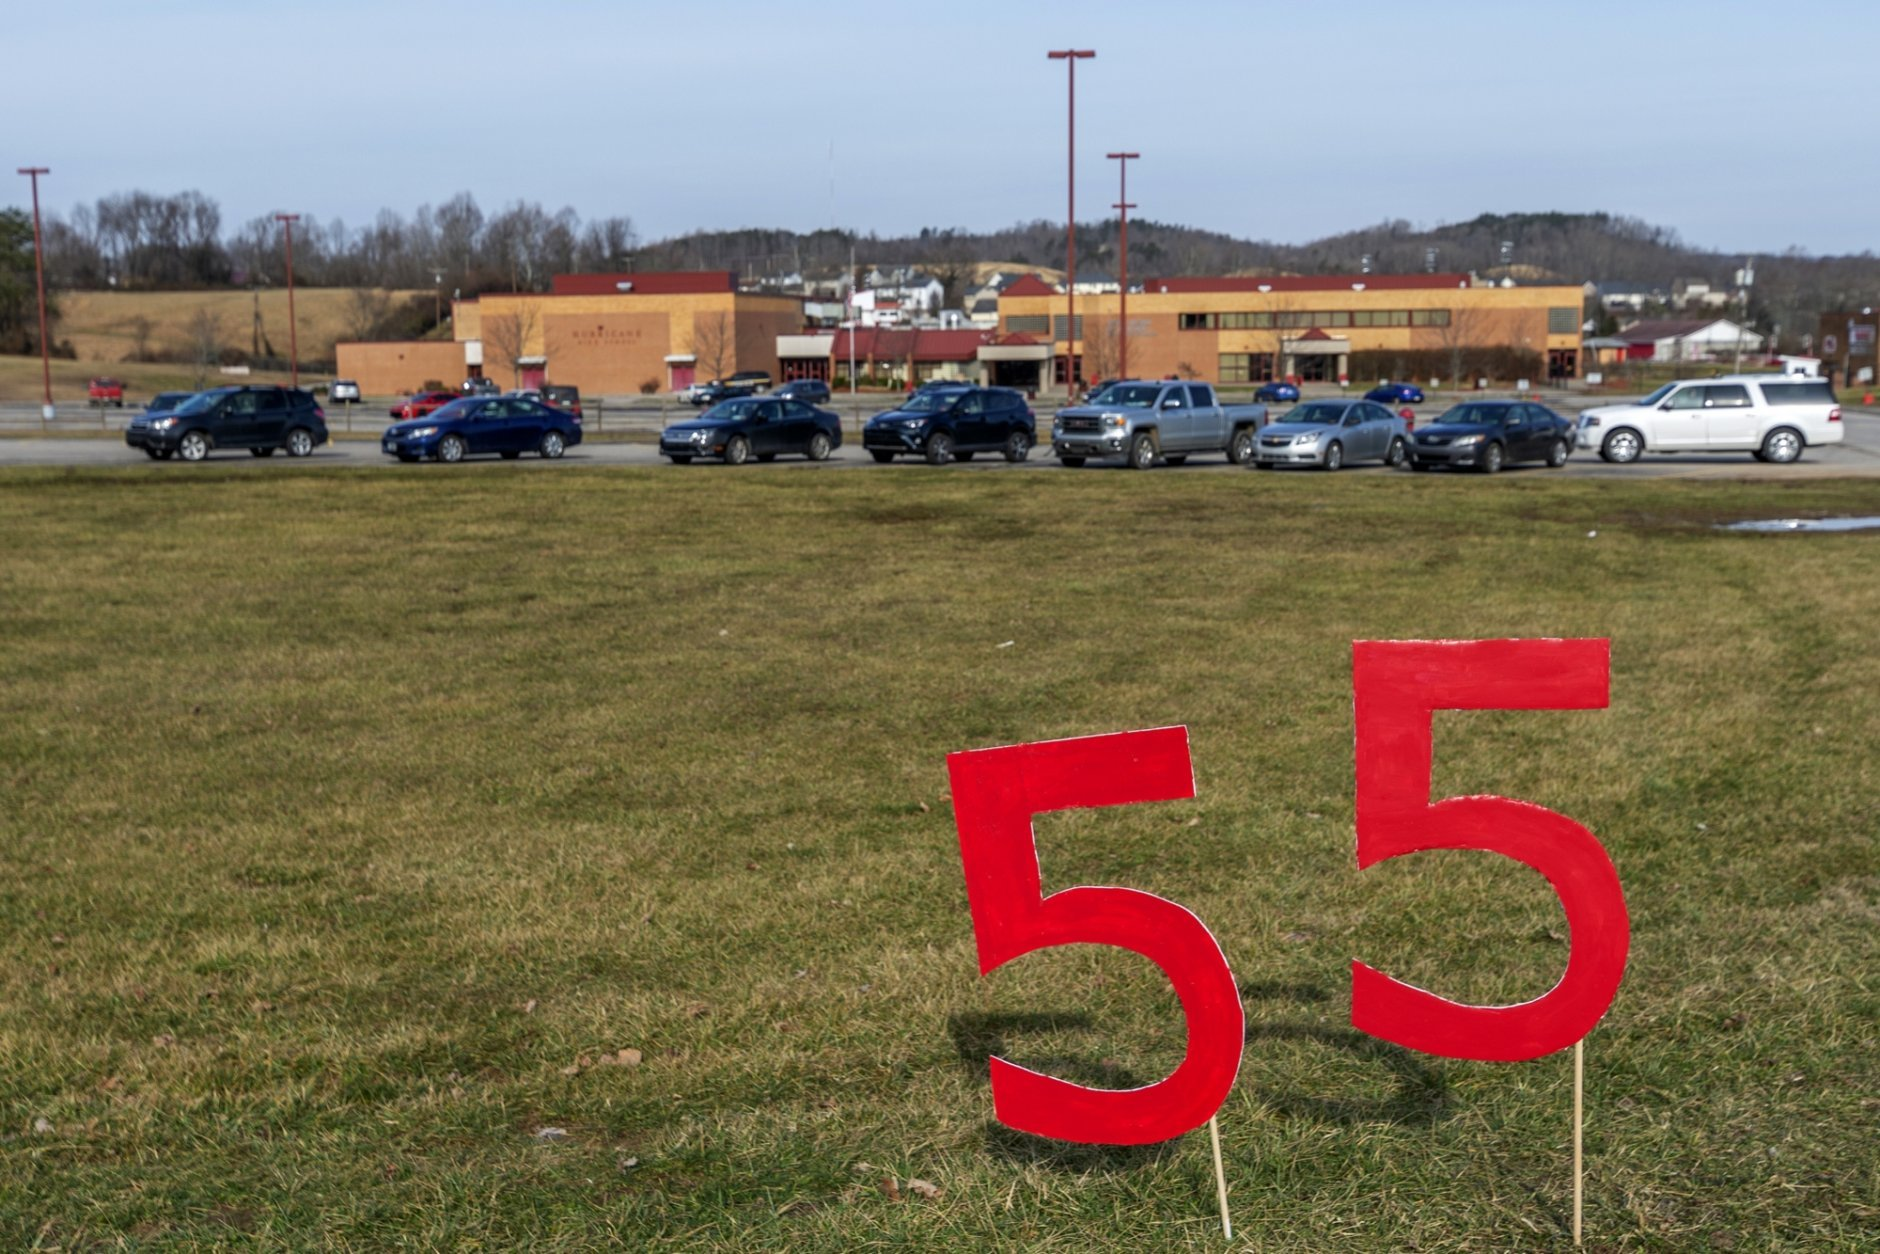 A 55 United sign stands outside of Hurricane High School which remains open in Putnam County, W.Va, during the first day of a statewide strike by teachers and school personnel on Tuesday, Feb. 19, 2019. While the other 54 state counties have decided to close schools, Putnam county has decided to keep its schools open. (Craig Hudson/Charleston Gazette-Mail via AP)